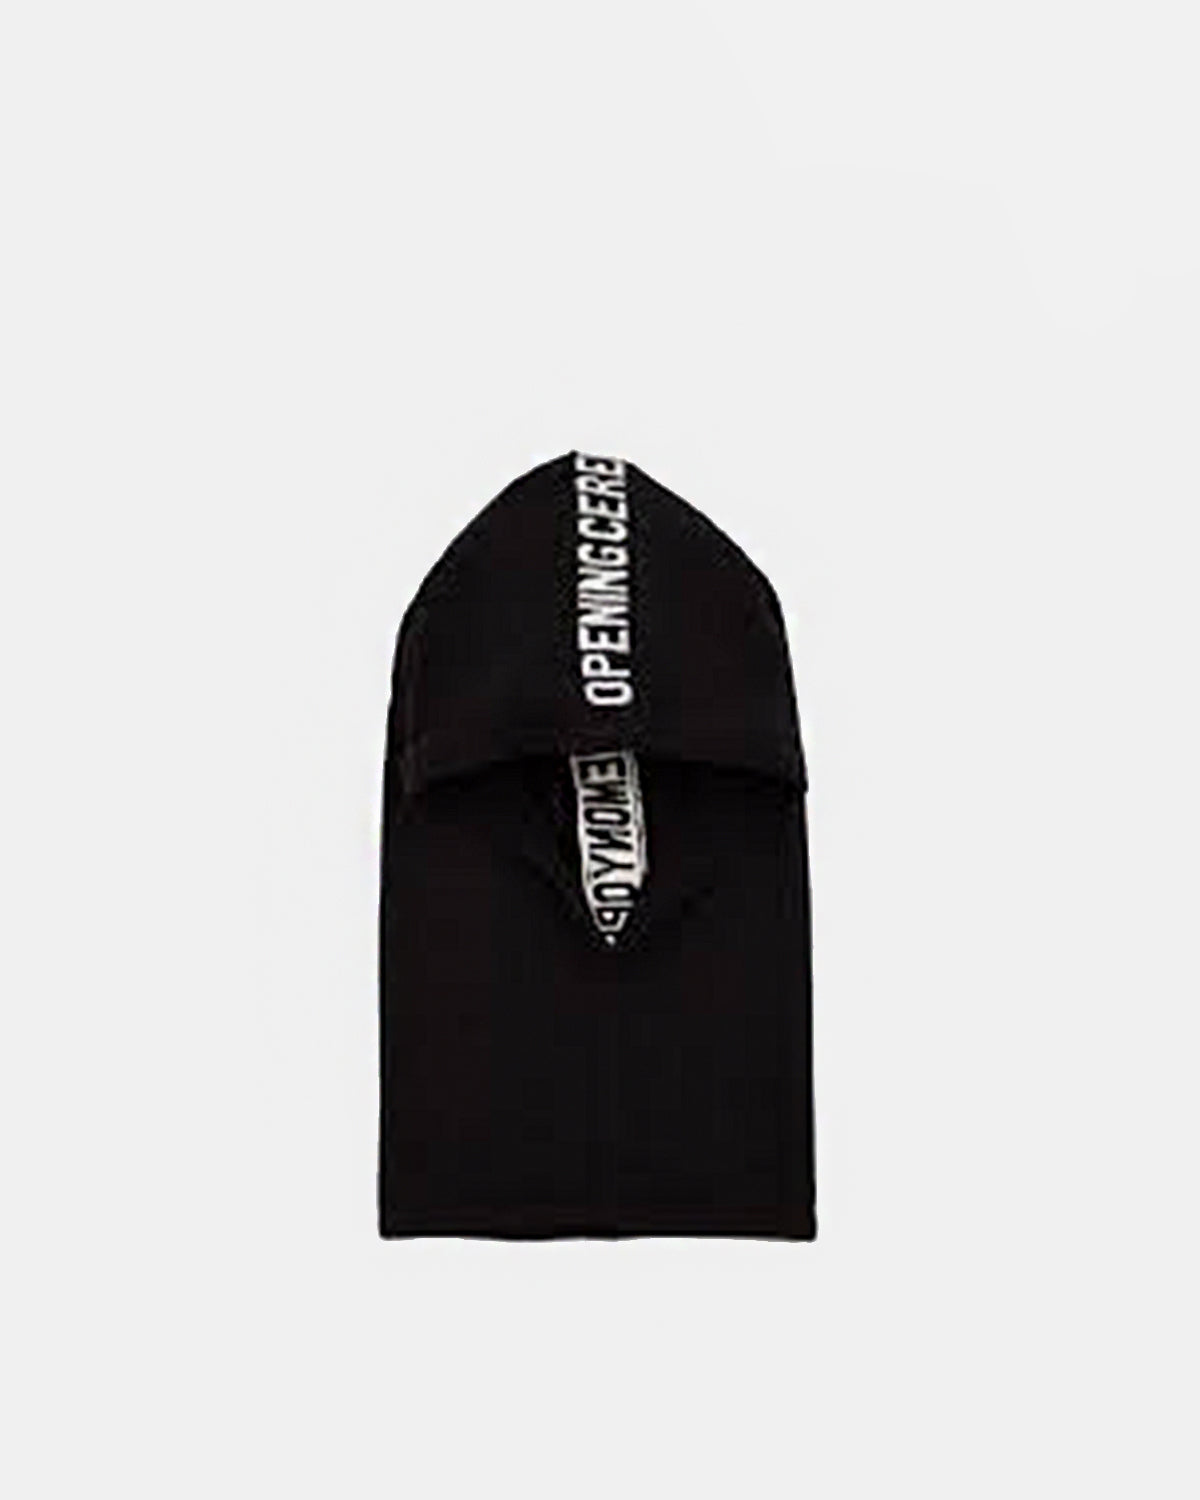 Opening Ceremony - Women's Knitted Hood (Black)